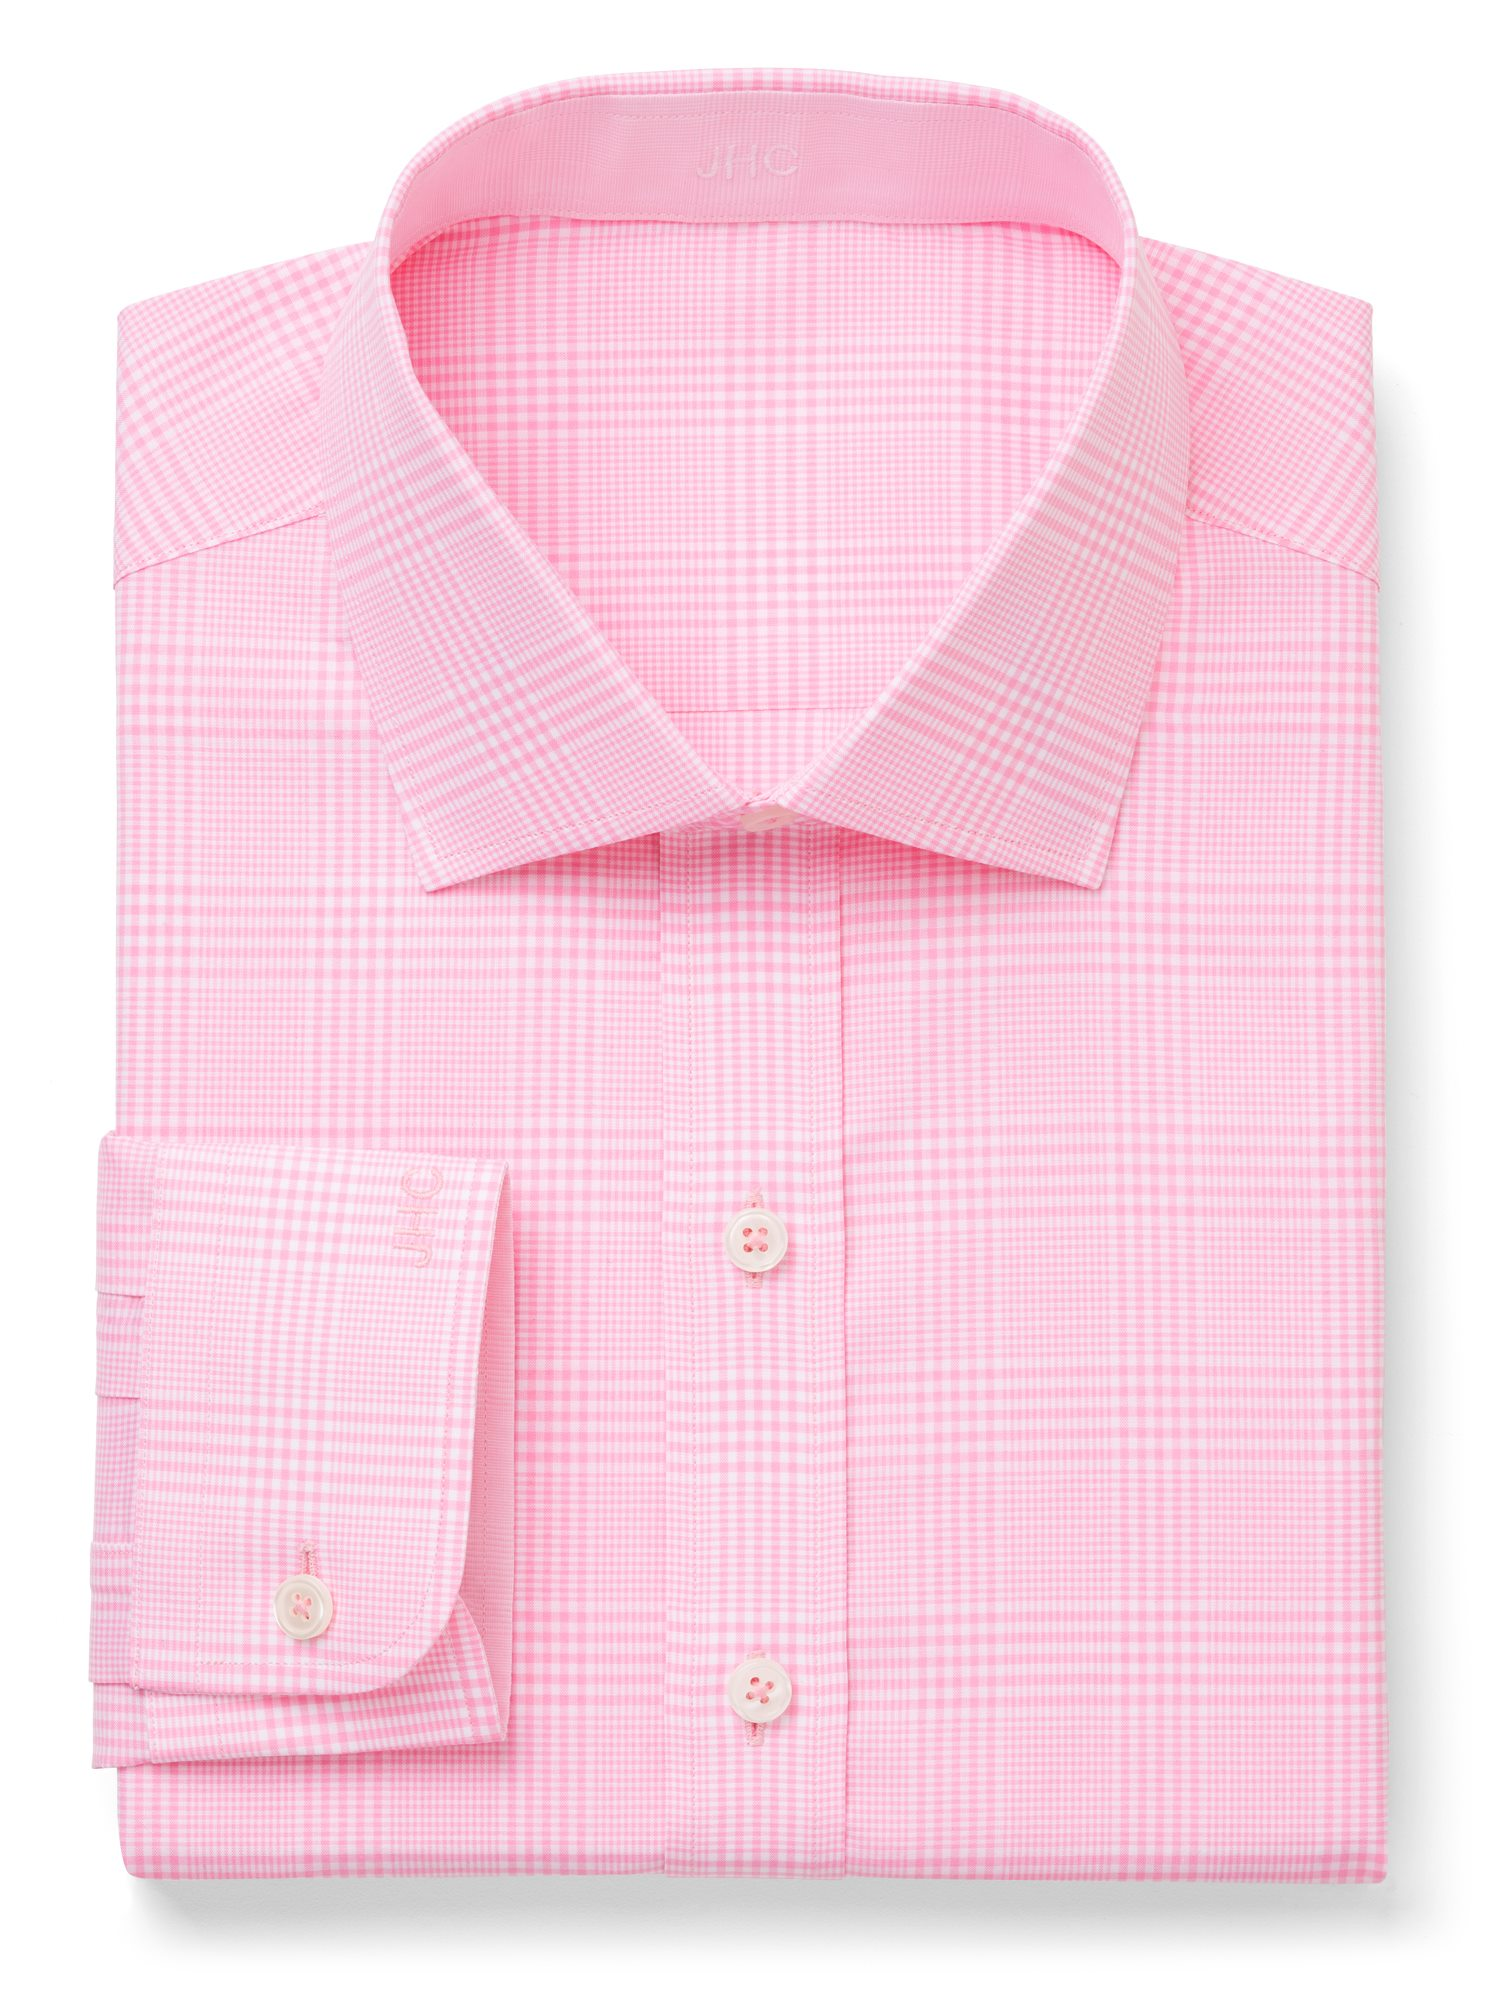 Pink/White Suiting Check | J.Hilburn